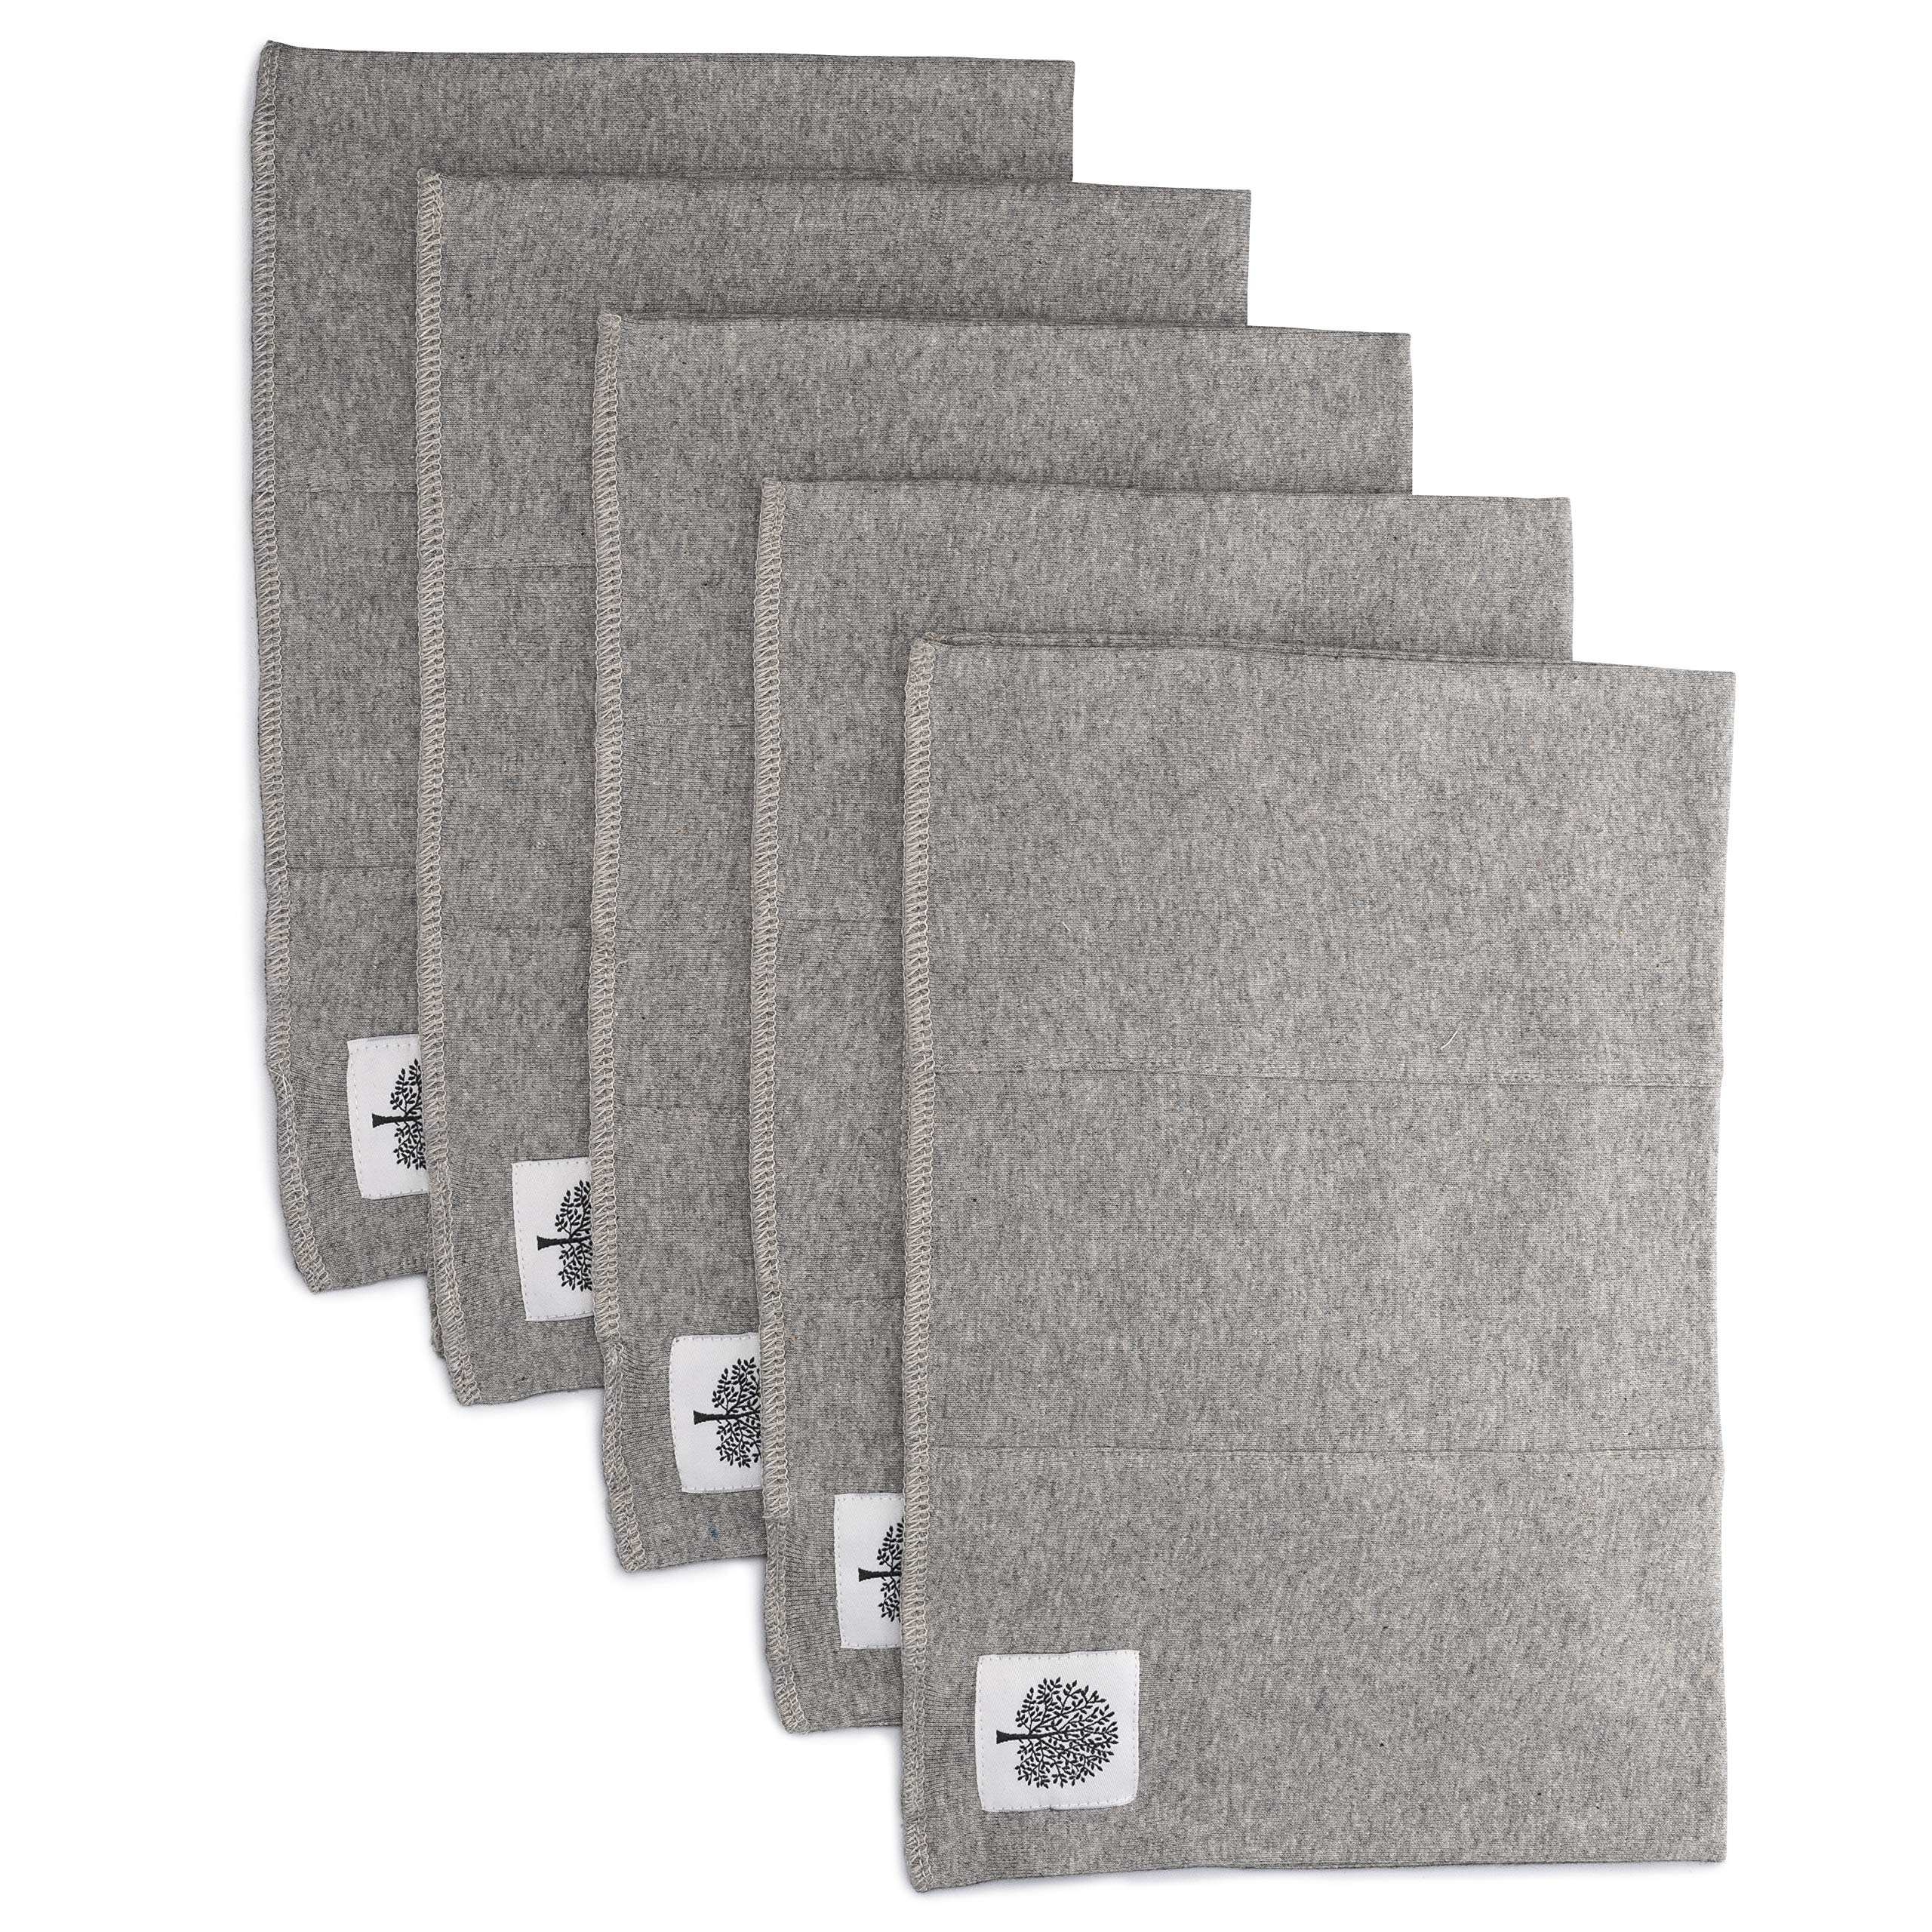 Parker Baby Organic Burp Cloths - 5 Pack Large Cotton Burp Clothes for Boys, Girls, Unisex - Heathered Gray by Parker Baby Co.